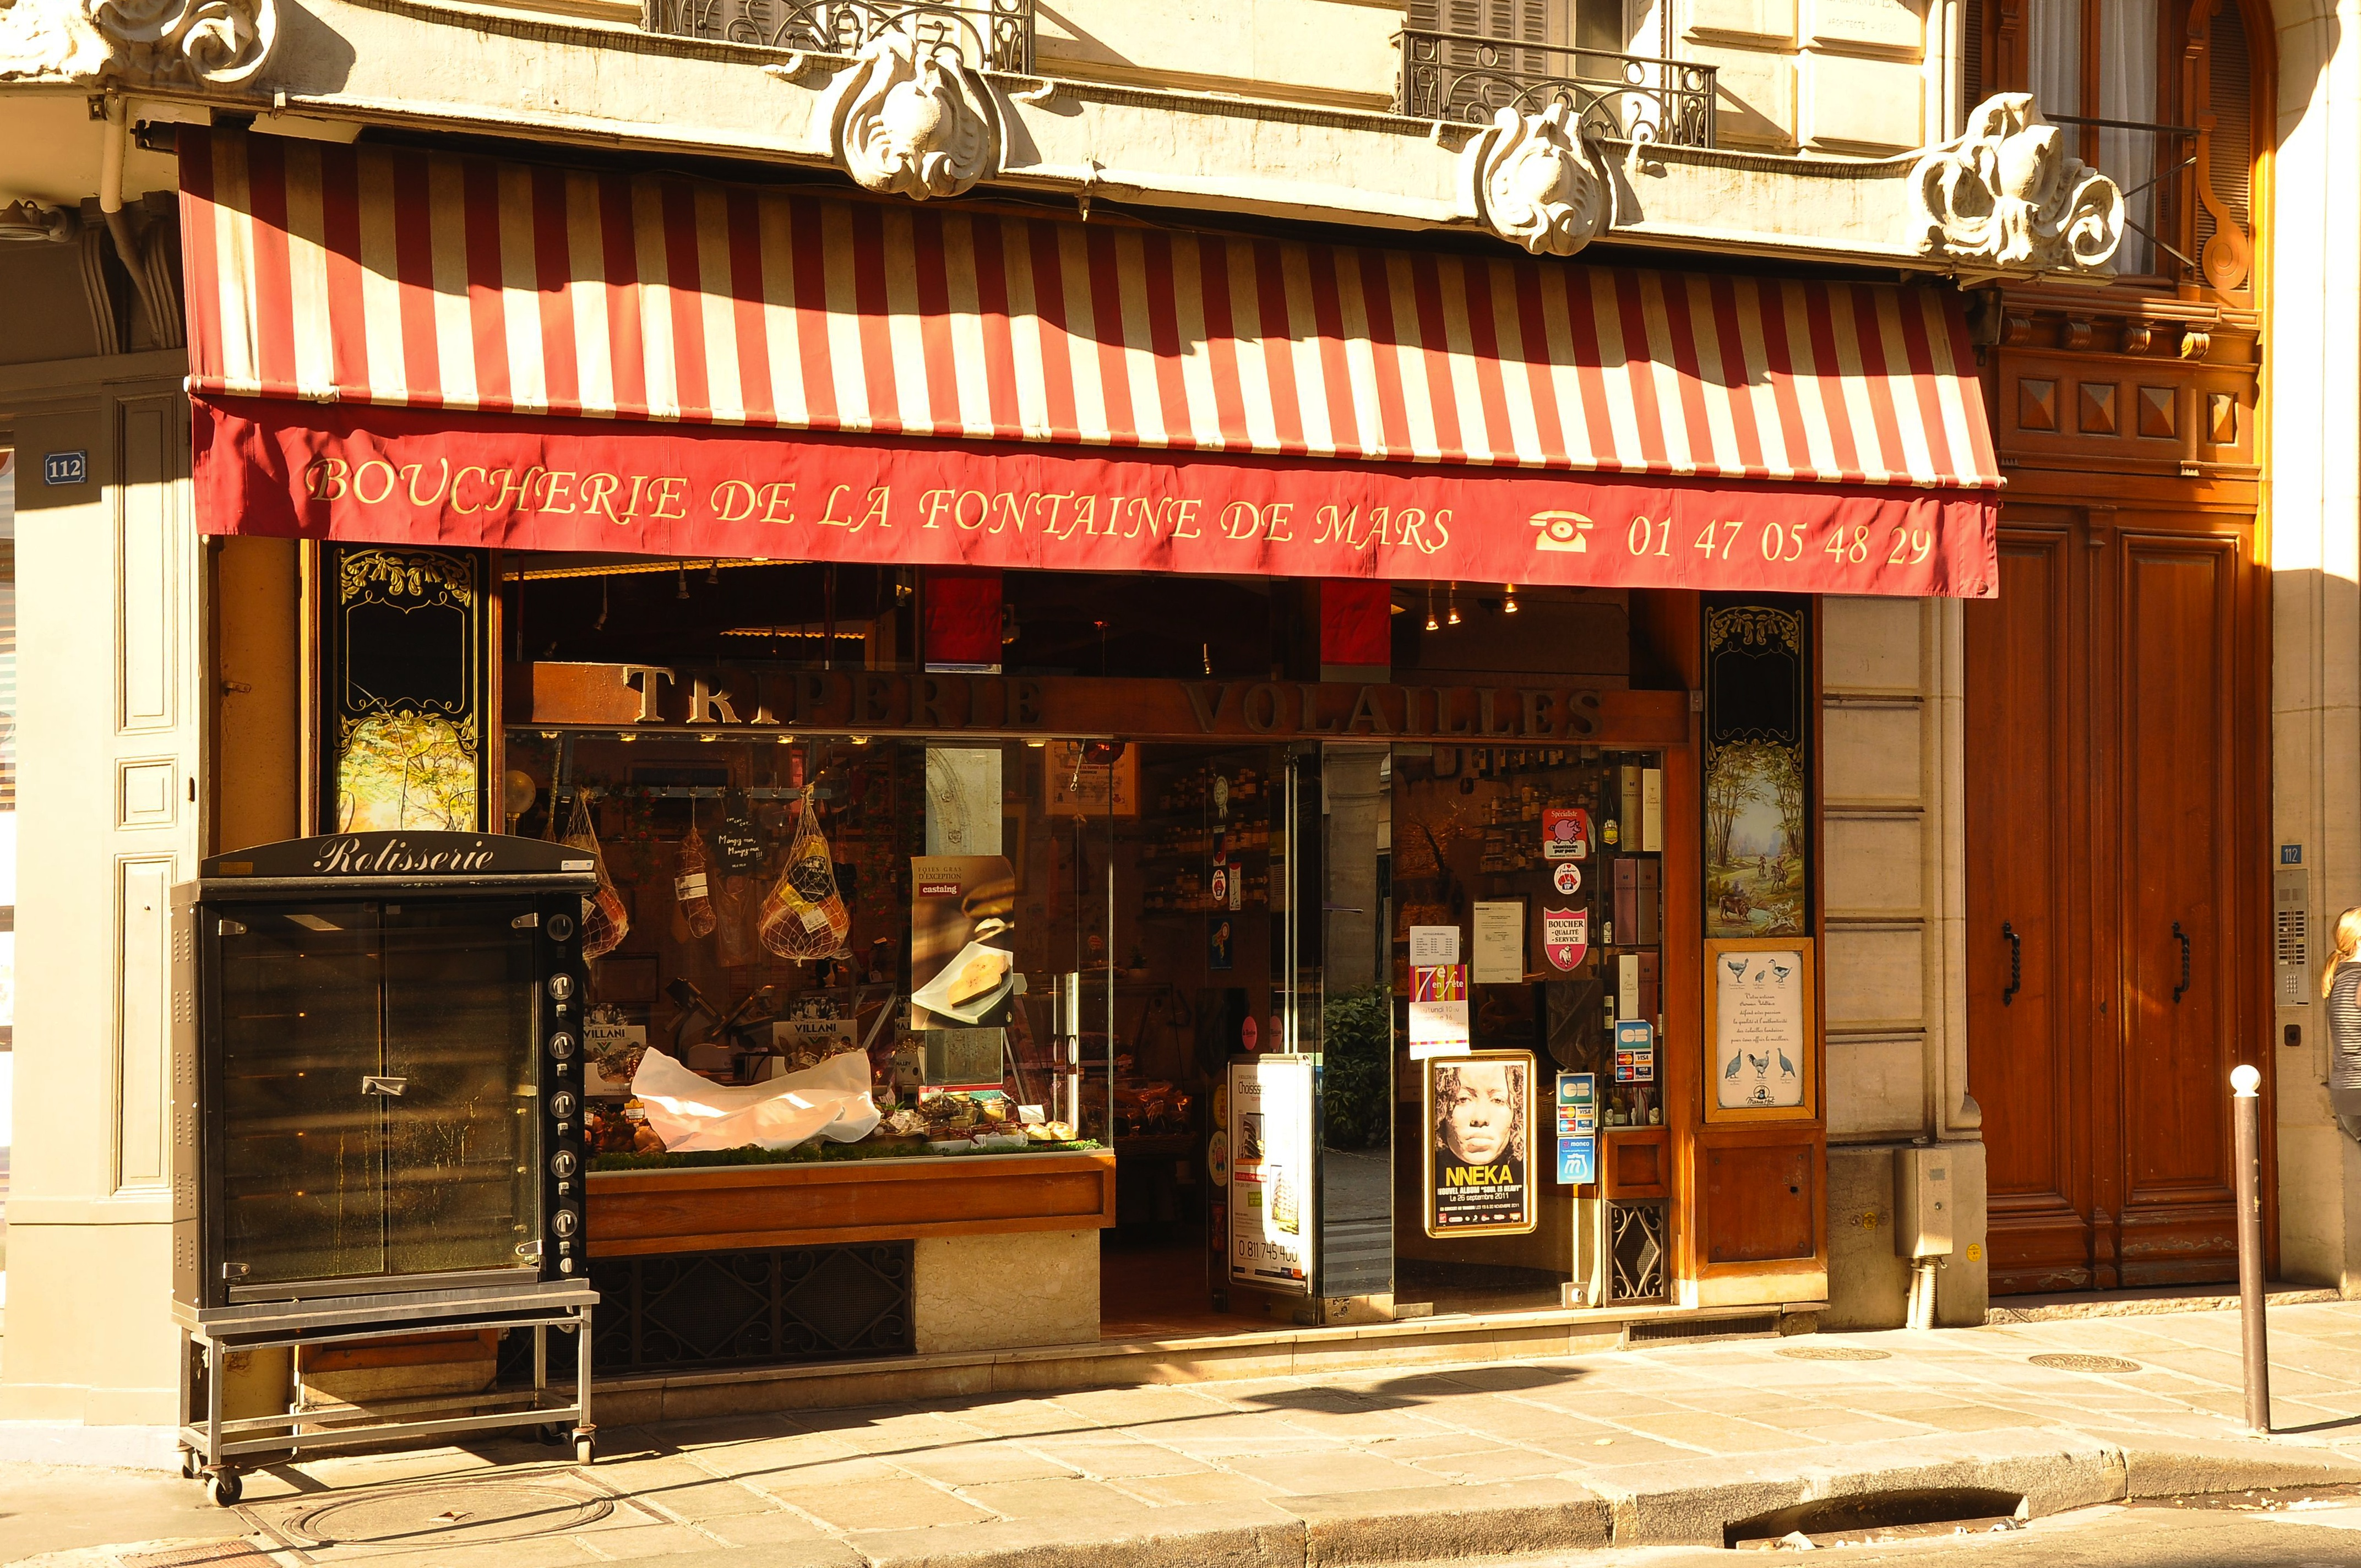 boucherie_de_la_fontaine_de_mars_112_rue_saint-dominique_paris_7e.jpg